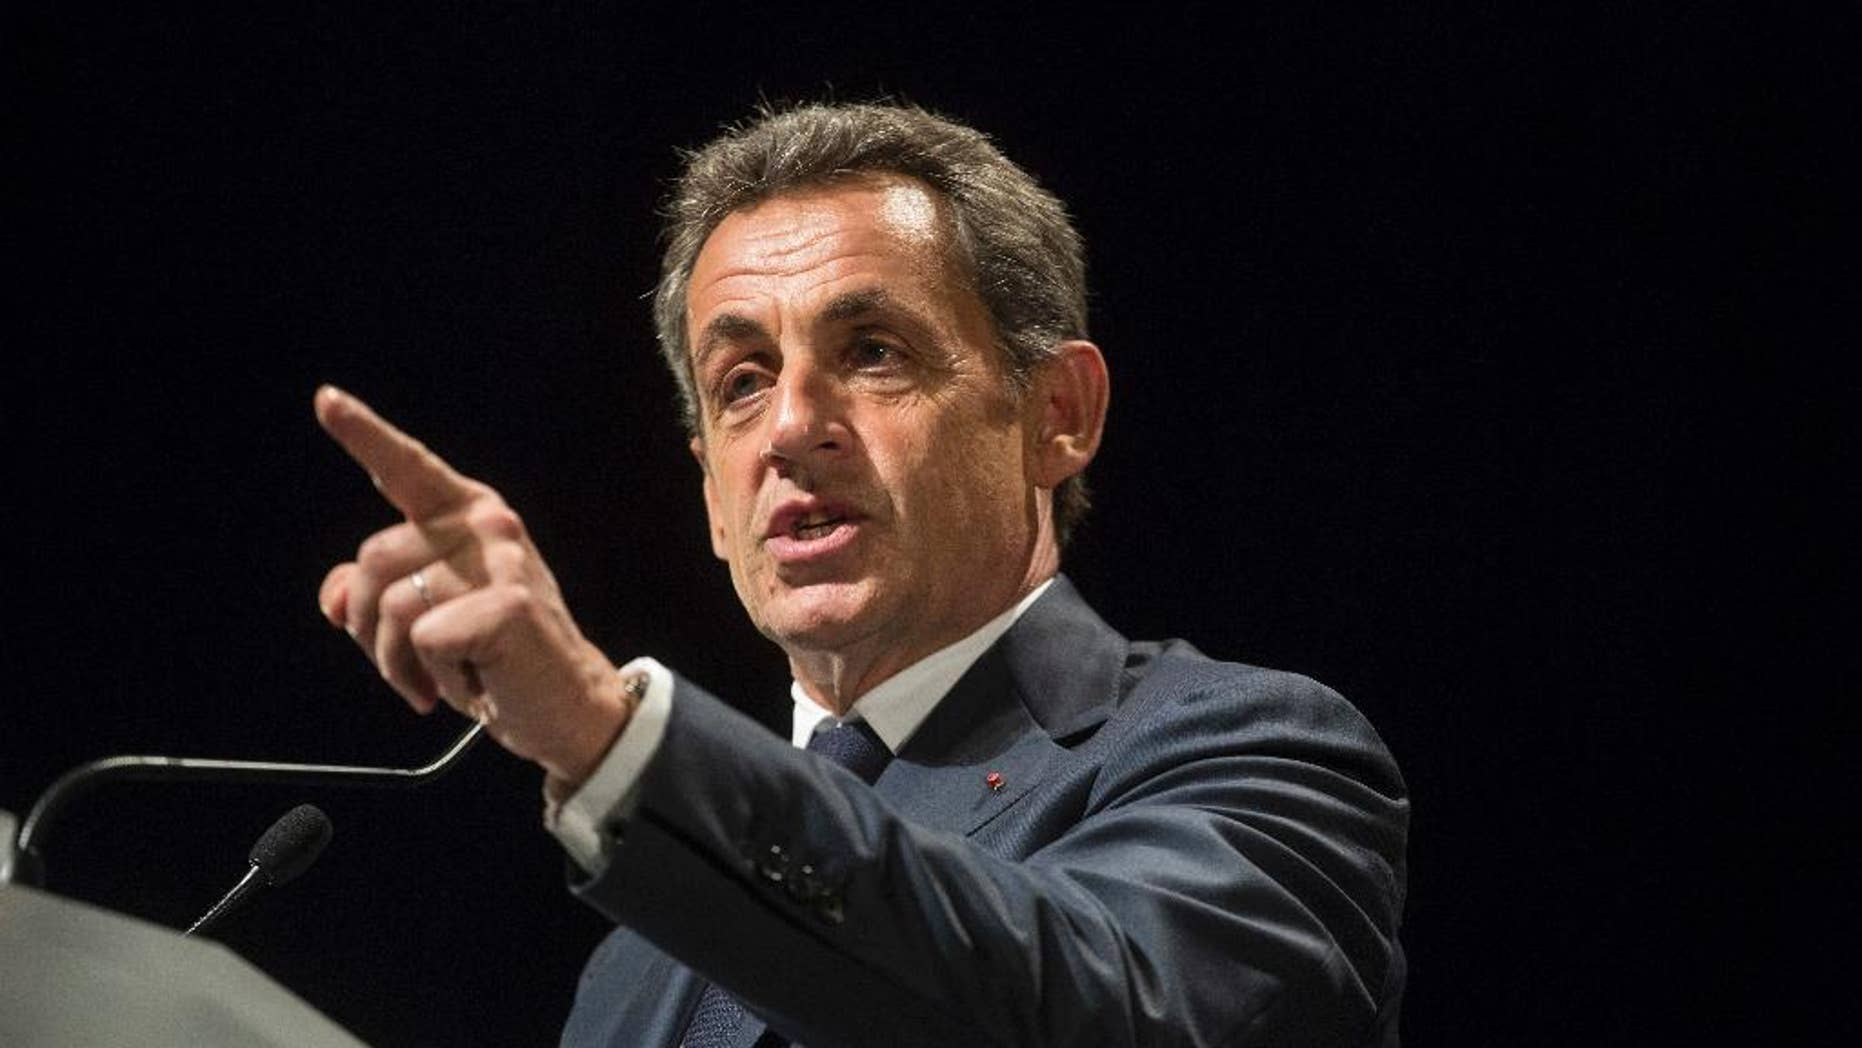 Former French President and candidate for France's conservative presidential primary Nicolas Sarkozy delivers a speech in early November.